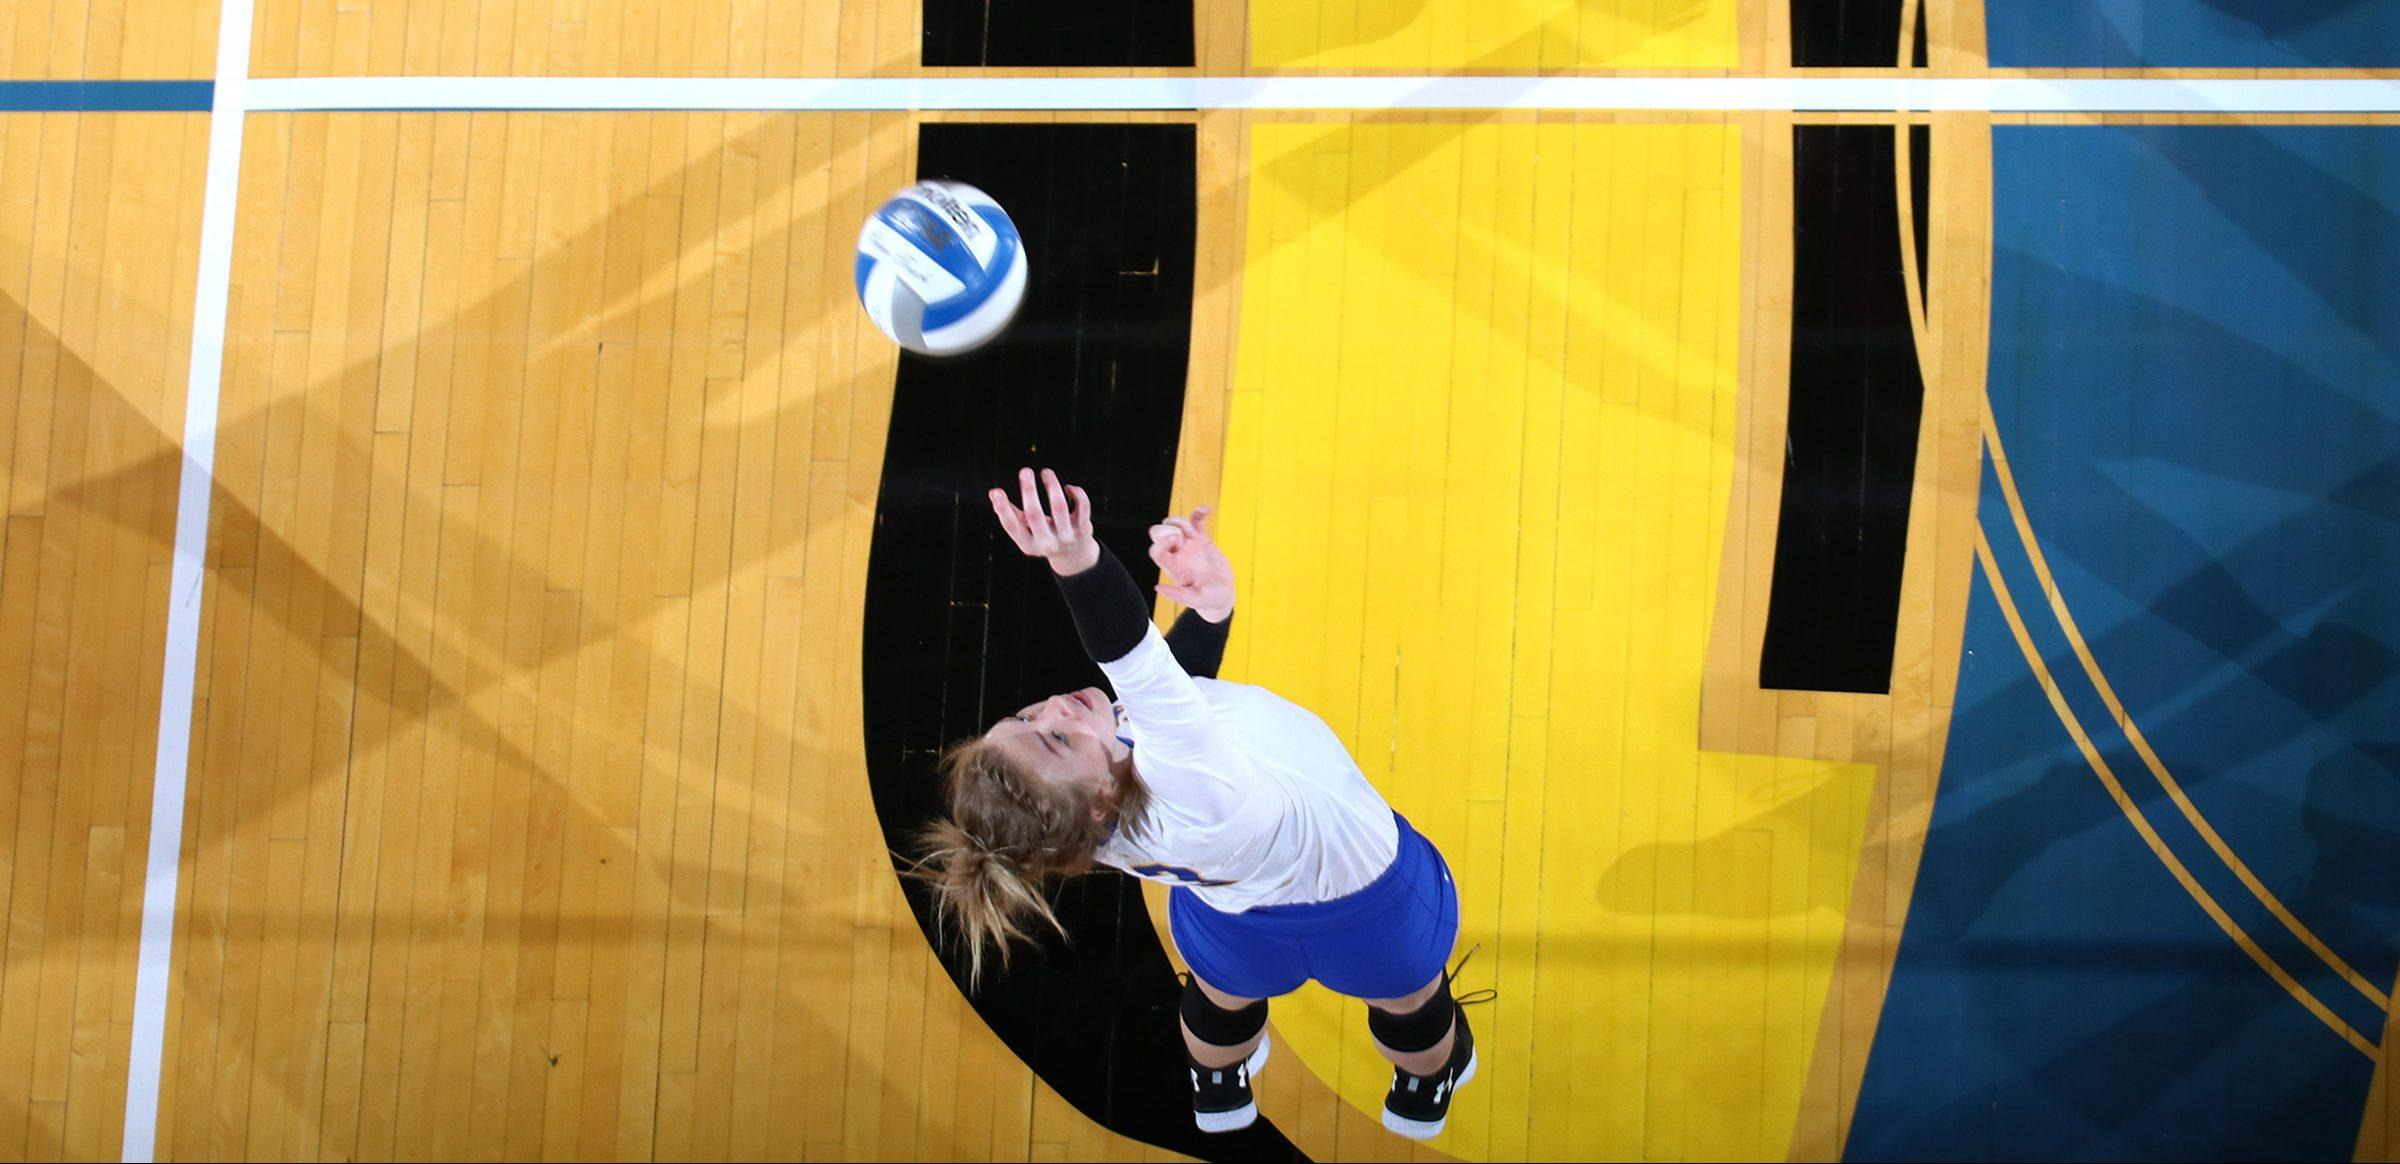 MIRANDA SAMPSON Junior outside hitter Makenzie Hennen (3) goes up for the kill during the SDSU Jackrabbits vs Omaha Mavericks volleyball match Friday, Sept. 21 in Frost Arena. The Jackrabbits lost 3-1 and will return to Frost Arena against University of South Dakota 2 p.m. Sunday, Oct. 7.